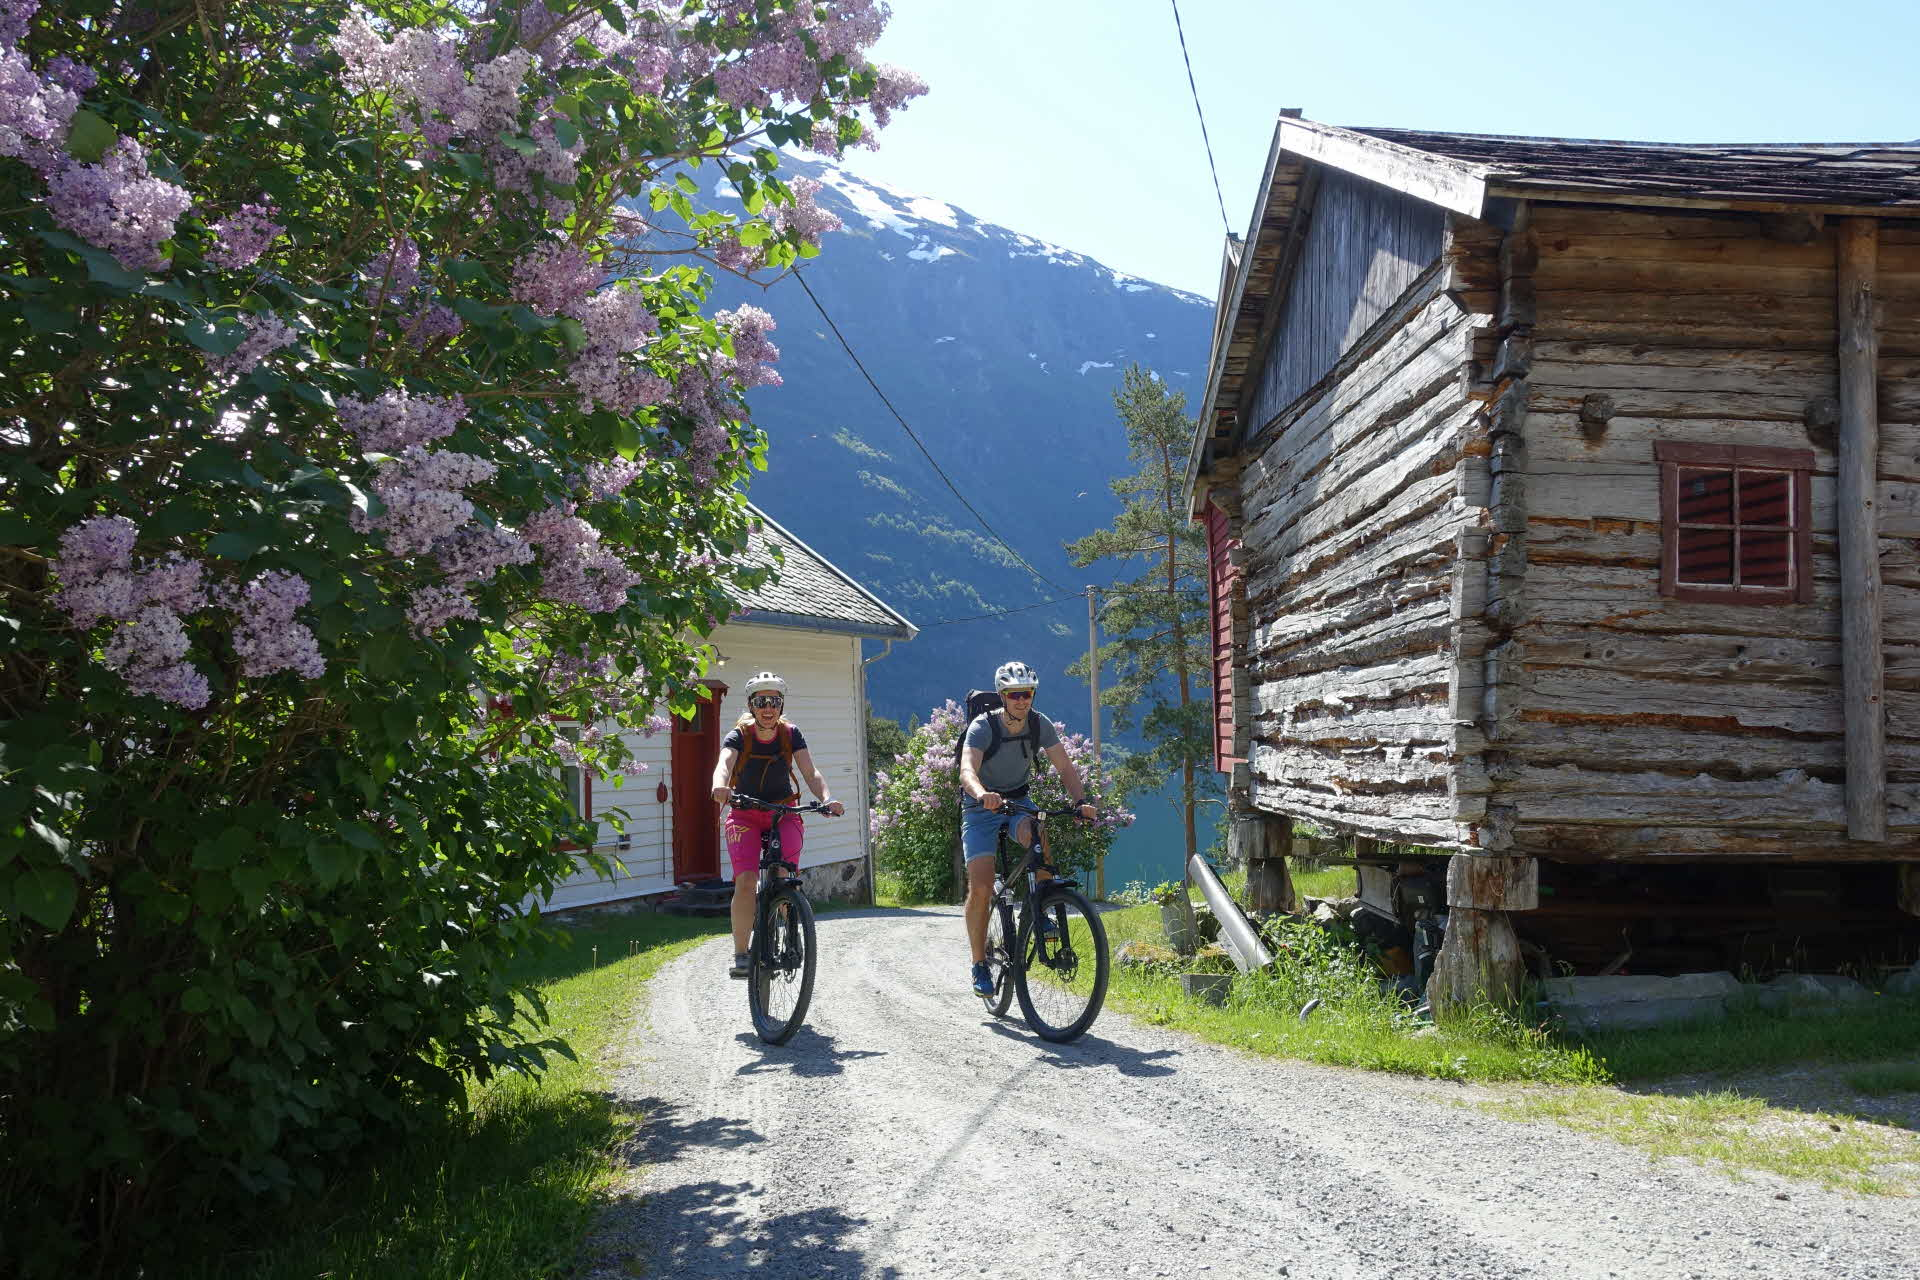 A happy mid 30's couple on bikes climbing up the gravel road in Dyrdal between old buildings and violet flowering trees